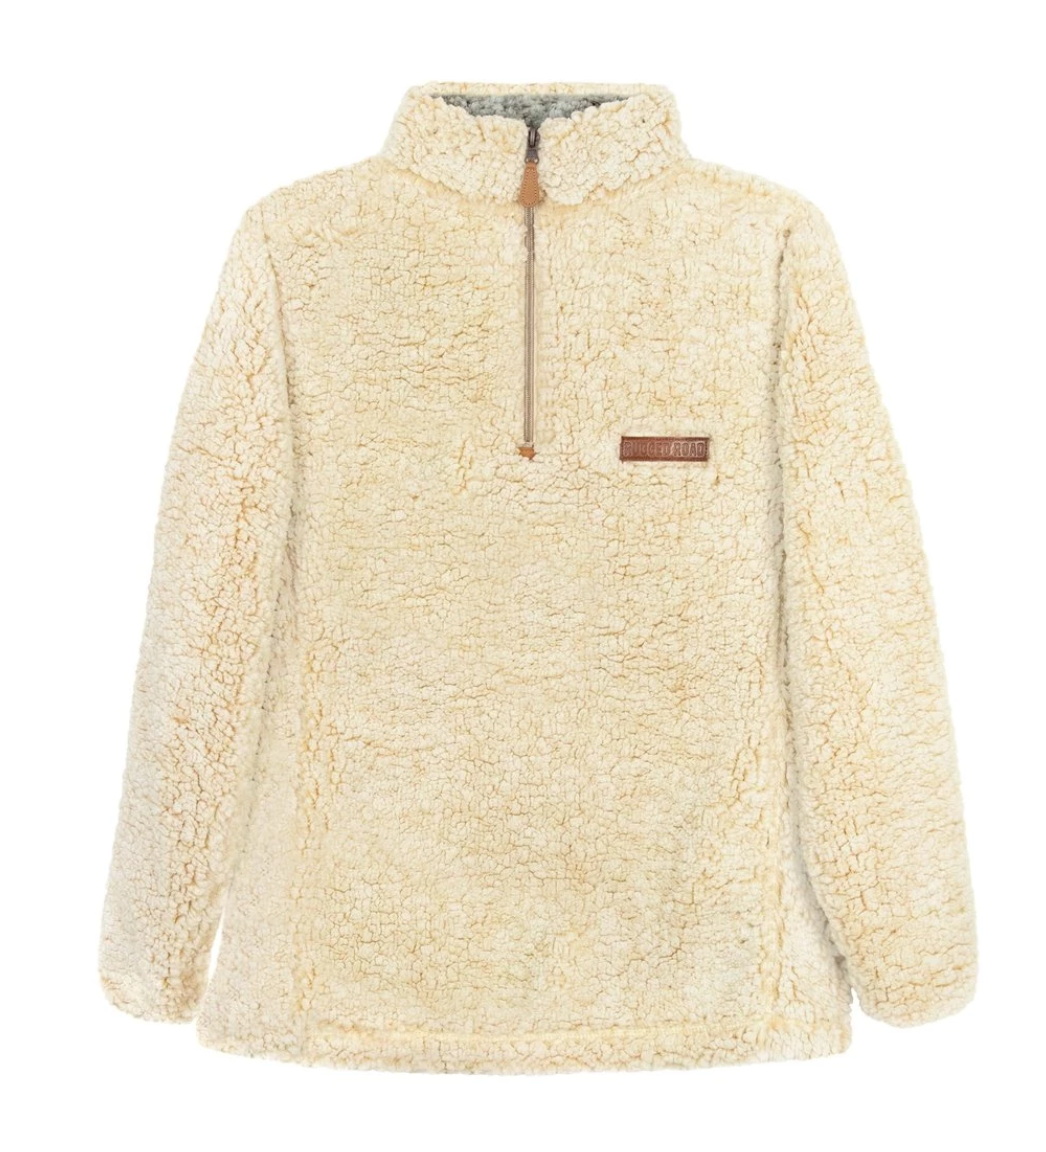 Rugged Road Pullover - Cream